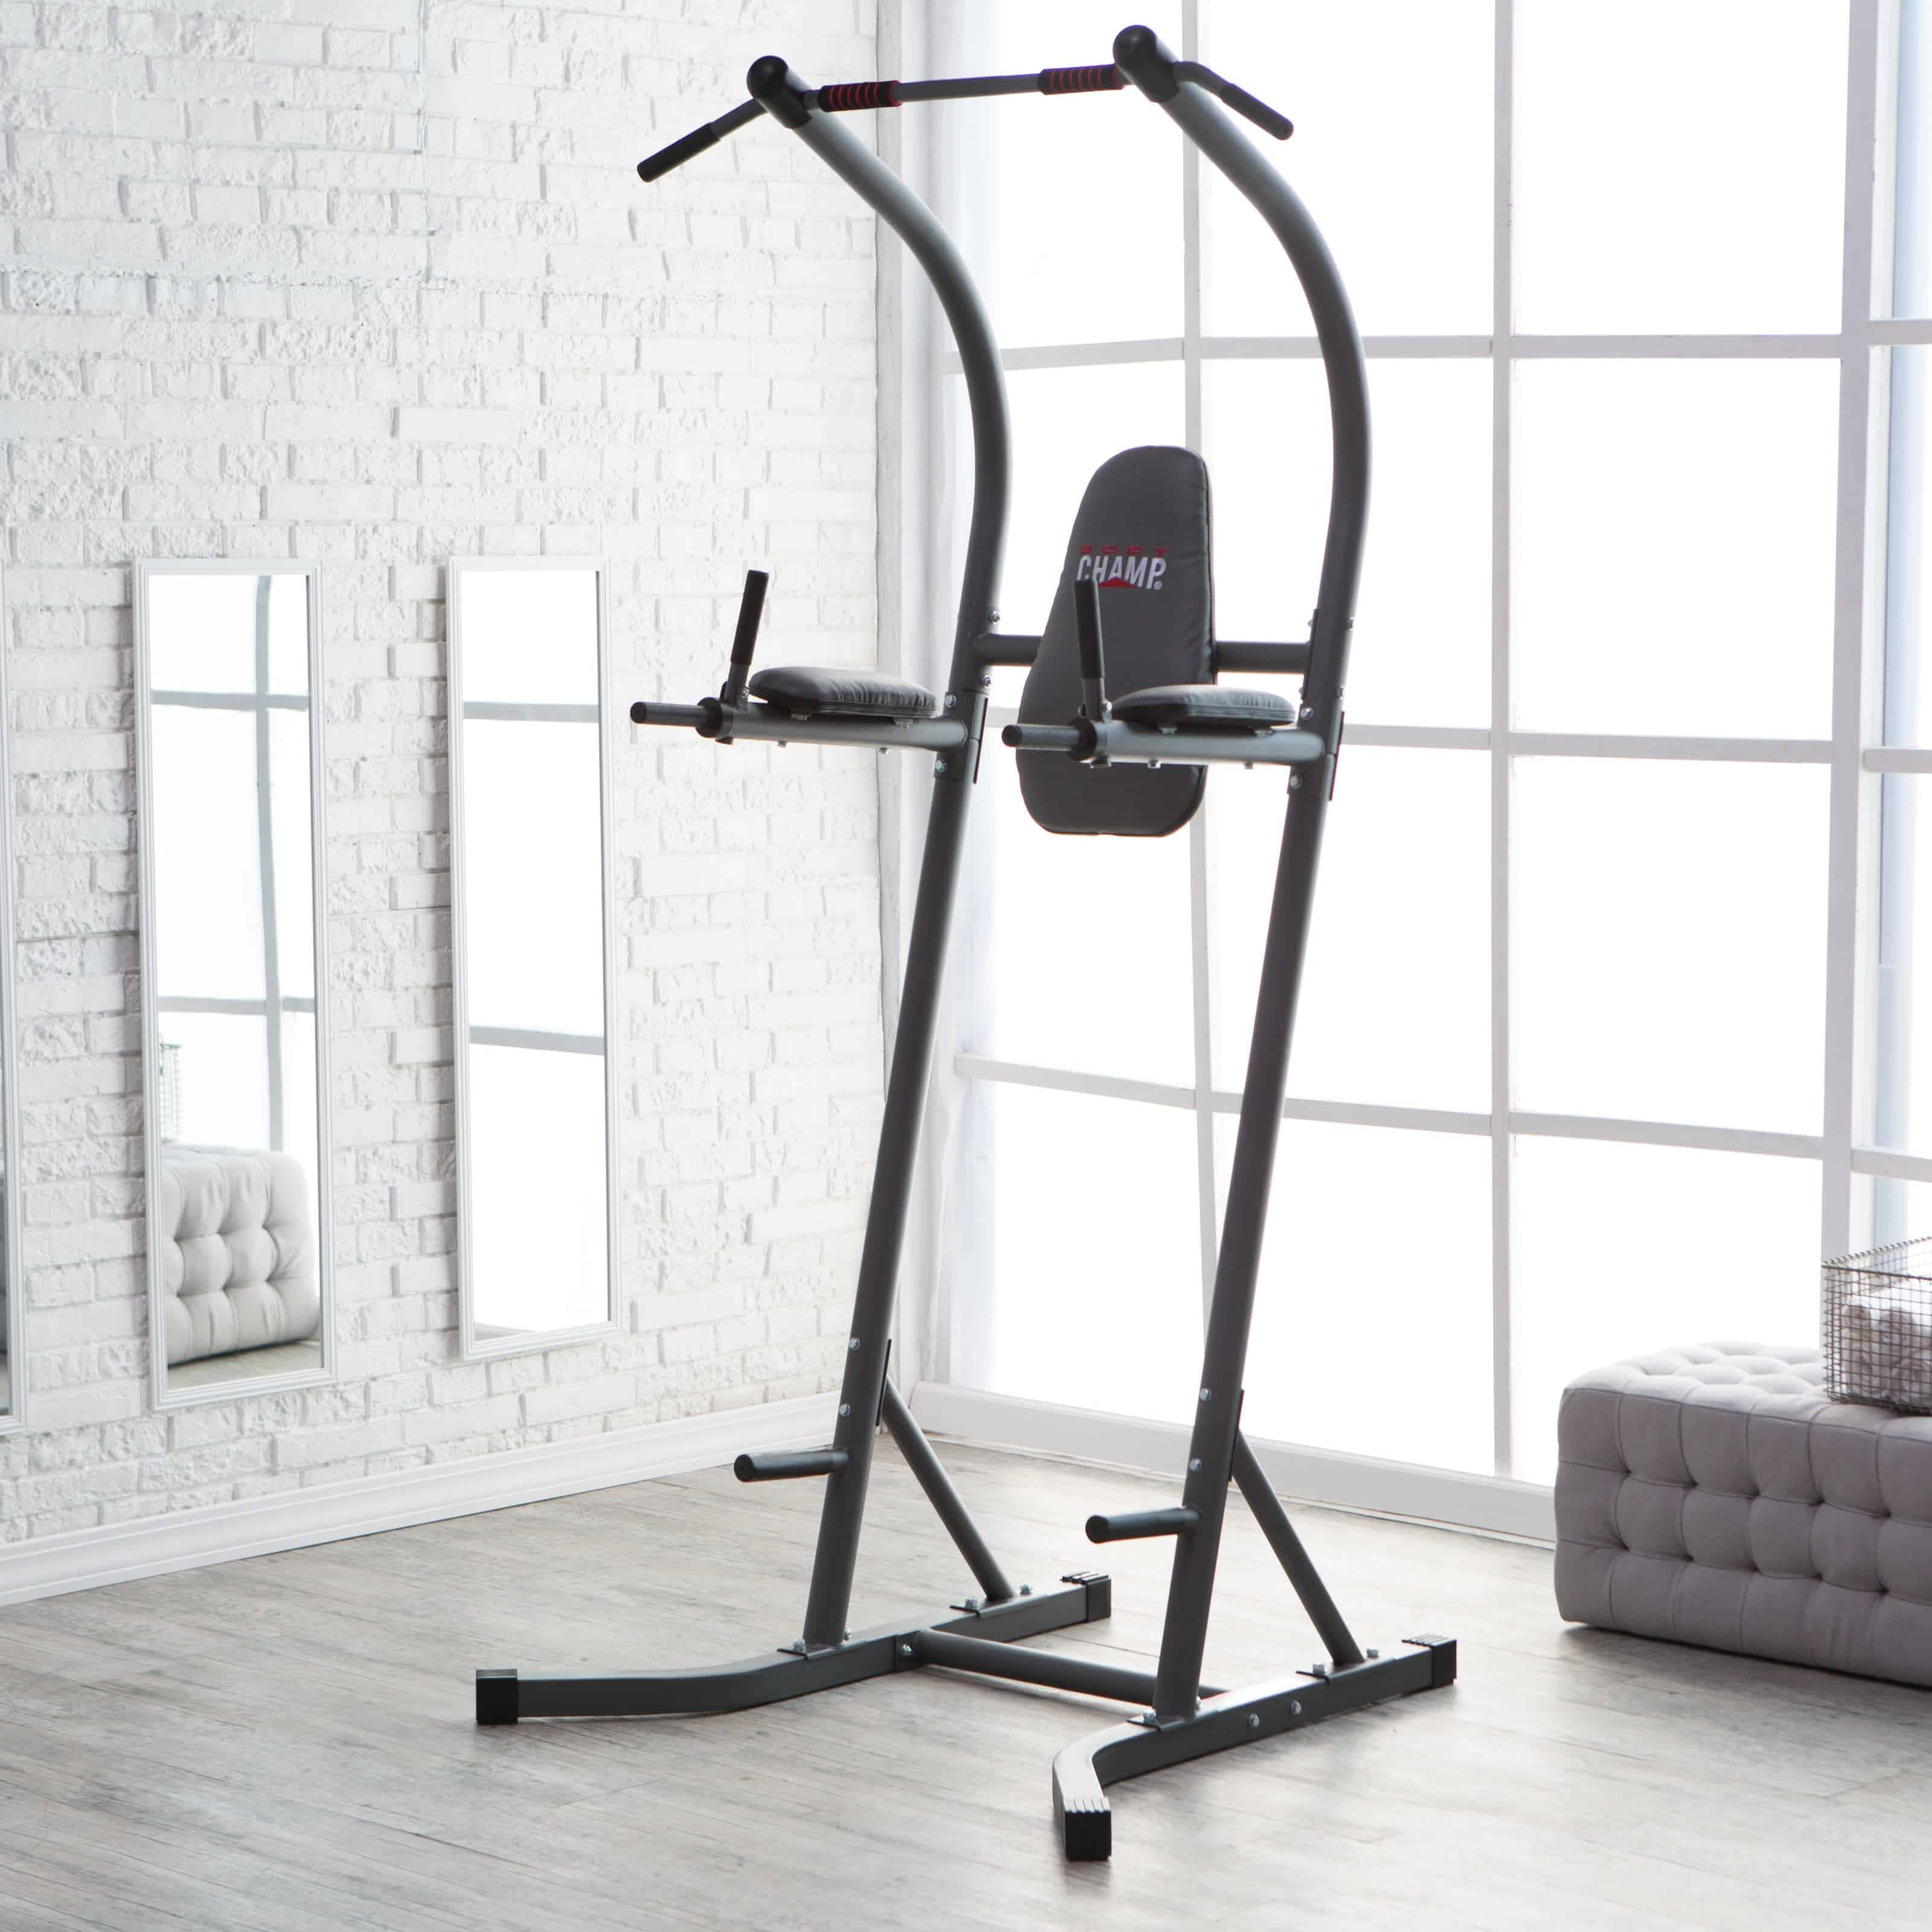 Best Power Tower Free Standing Pull Up Bar Peak Health Pro